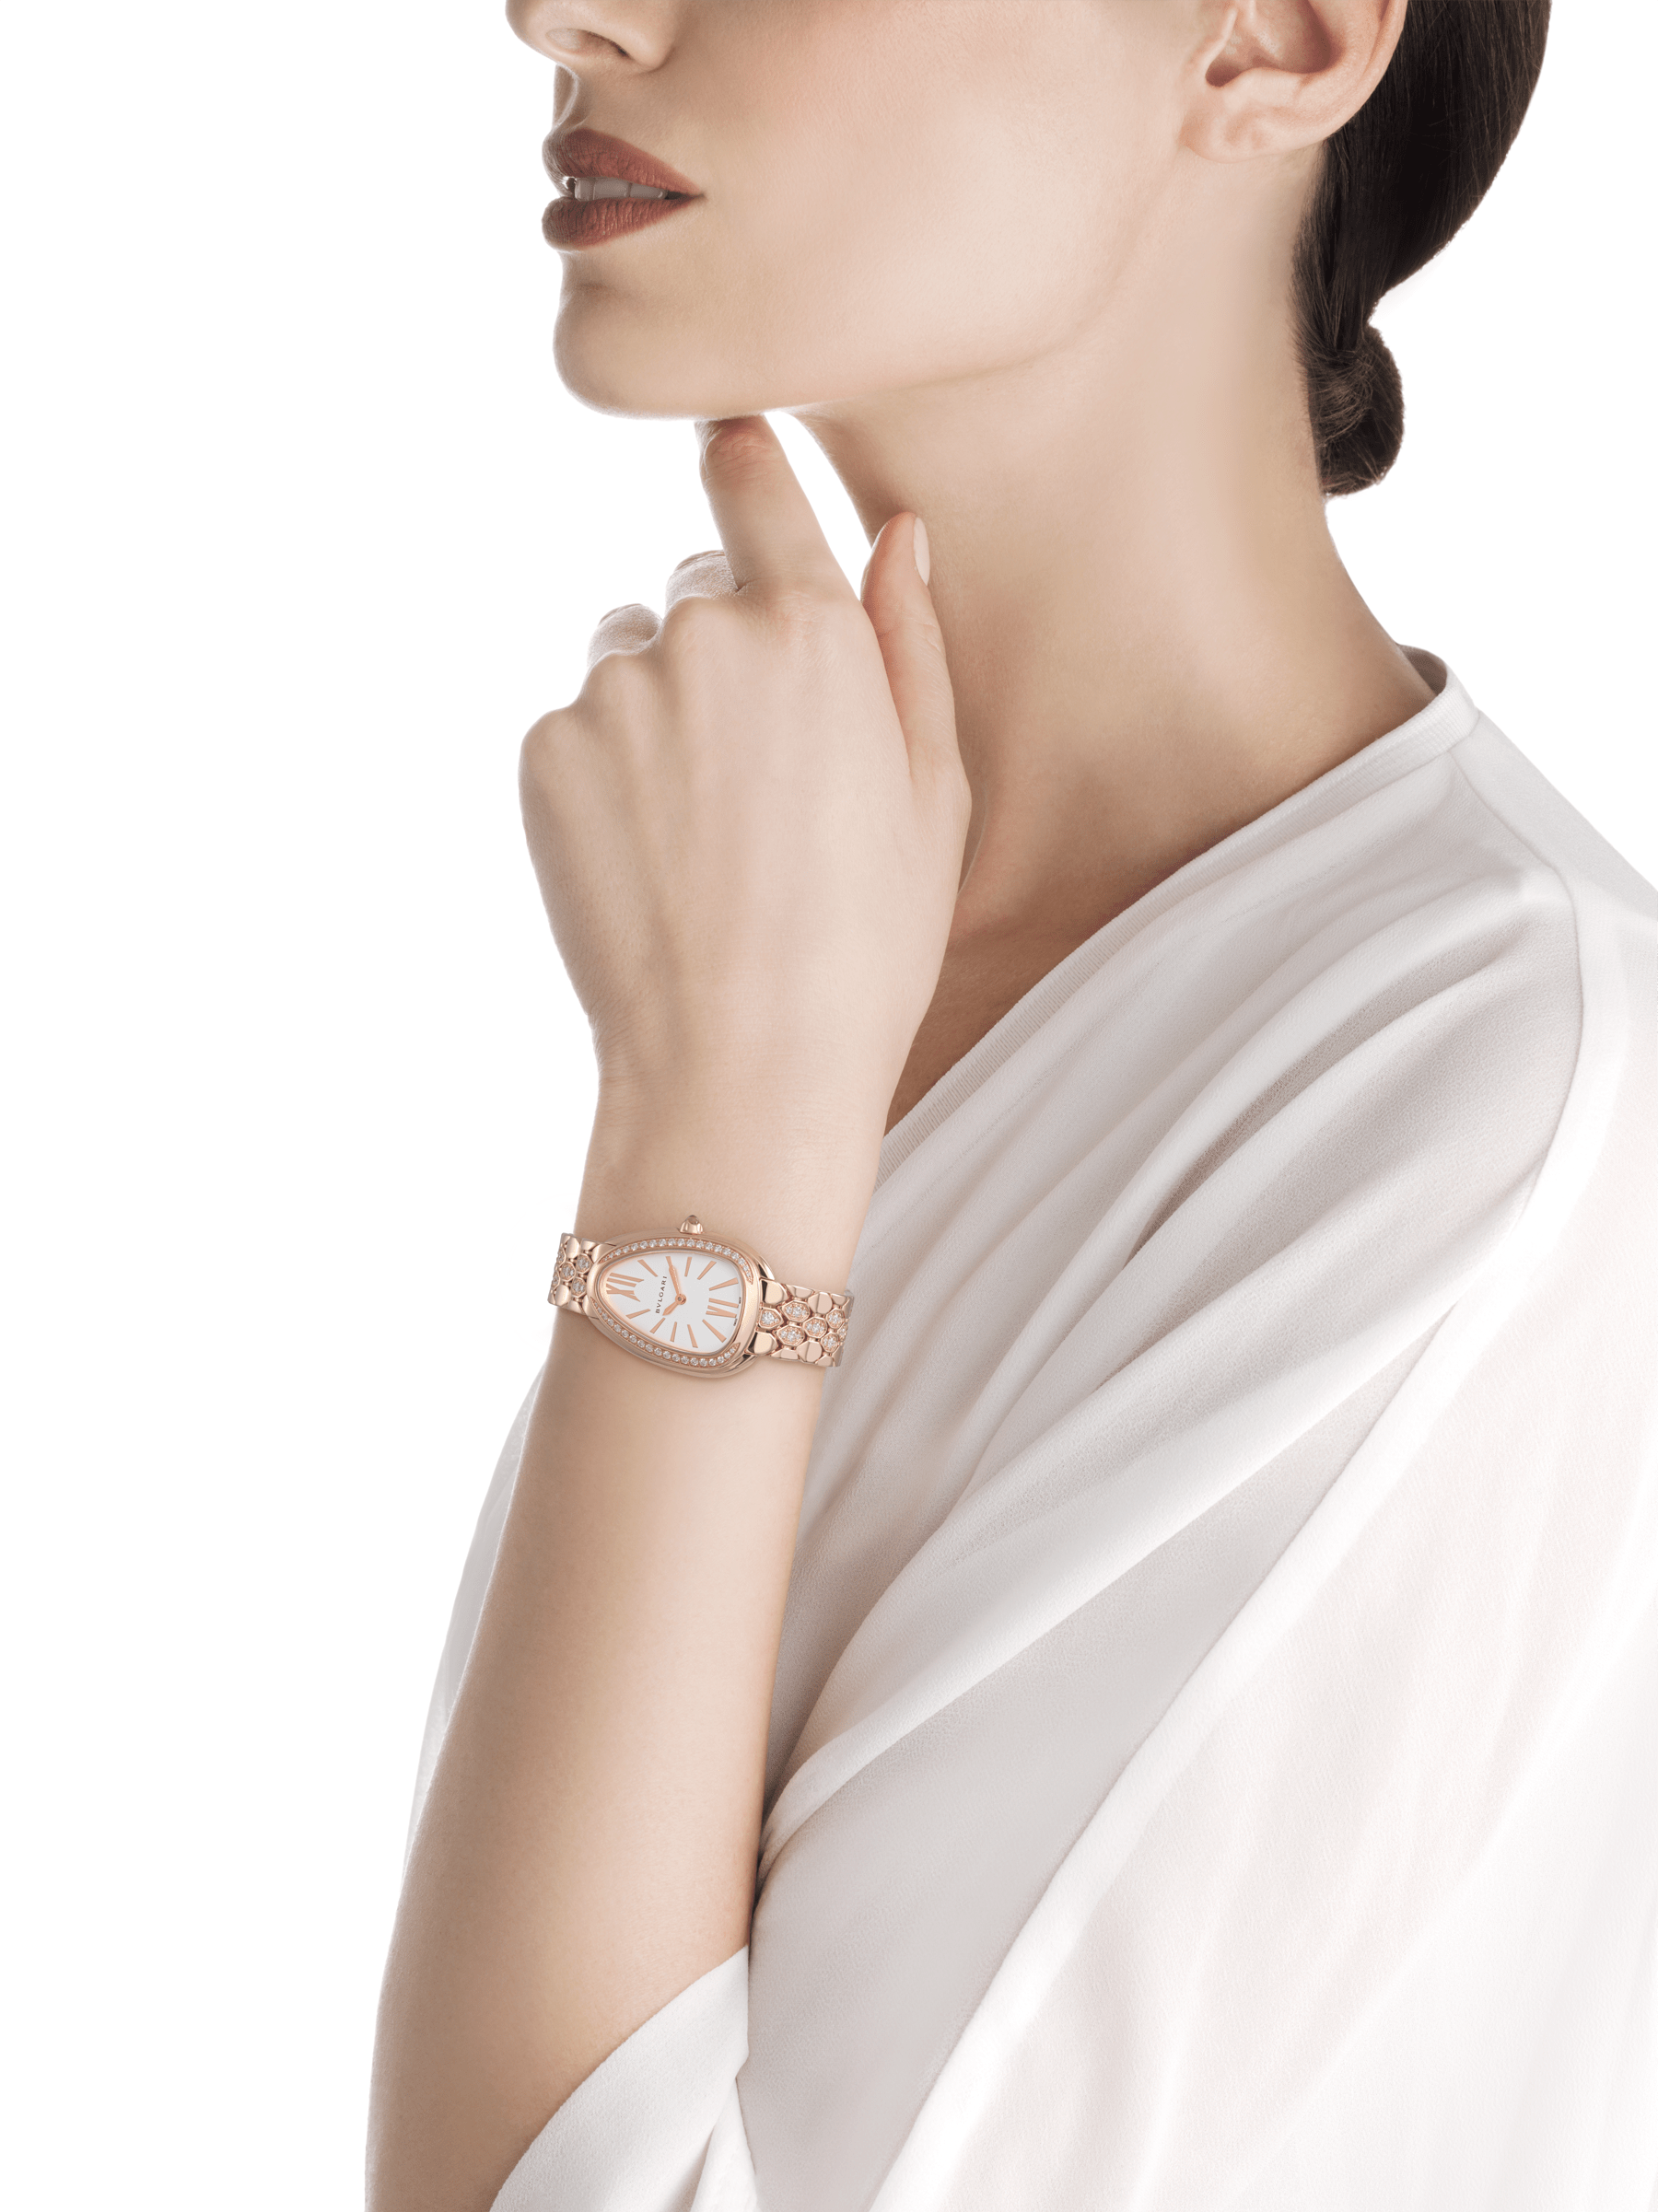 Serpenti Seduttori watch with 18 kt rose gold case and bracelet both set with diamonds, and white dial 103275 image 4